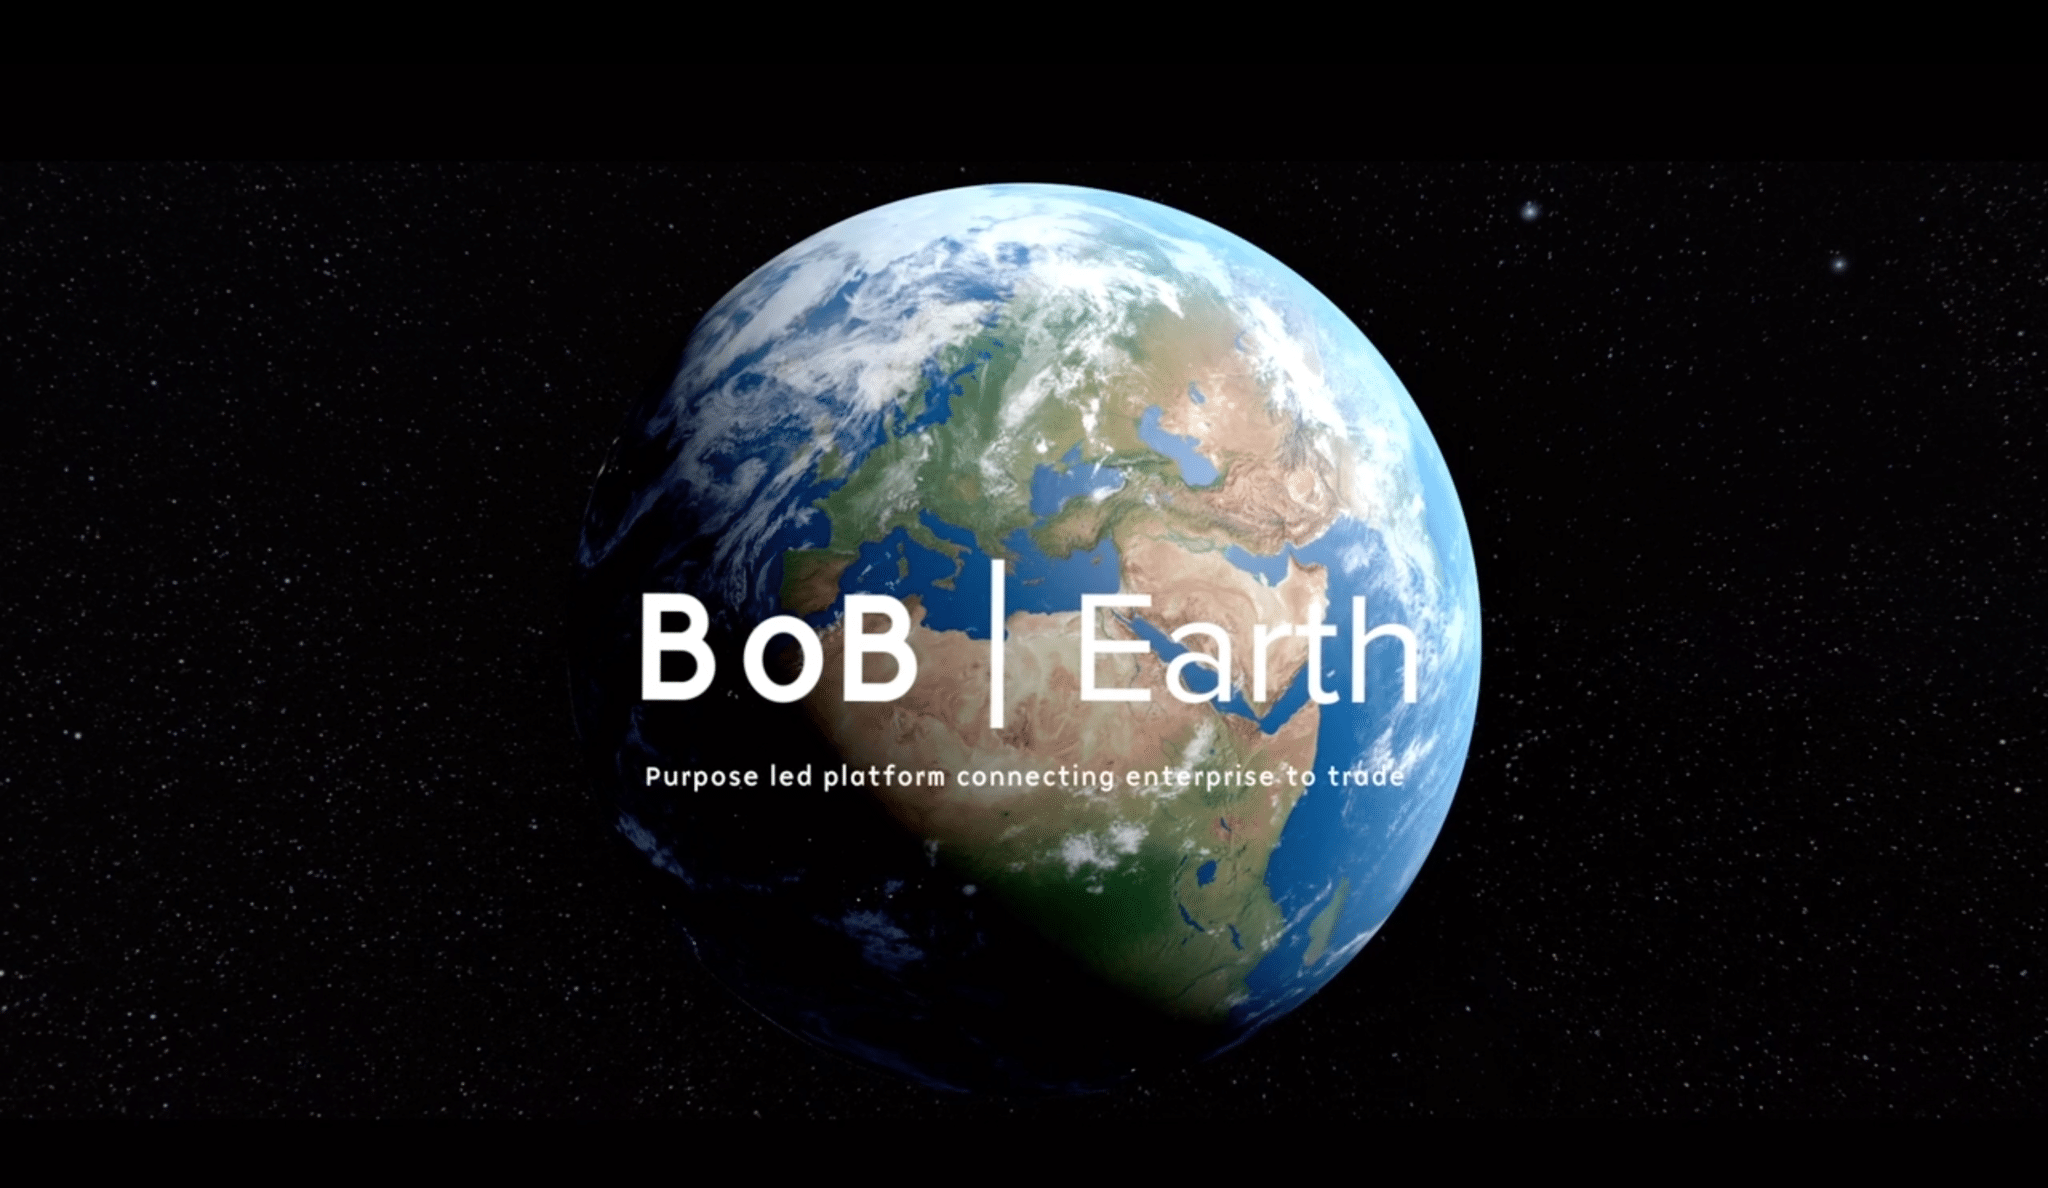 BoB Earth – 1 Billion Purposes